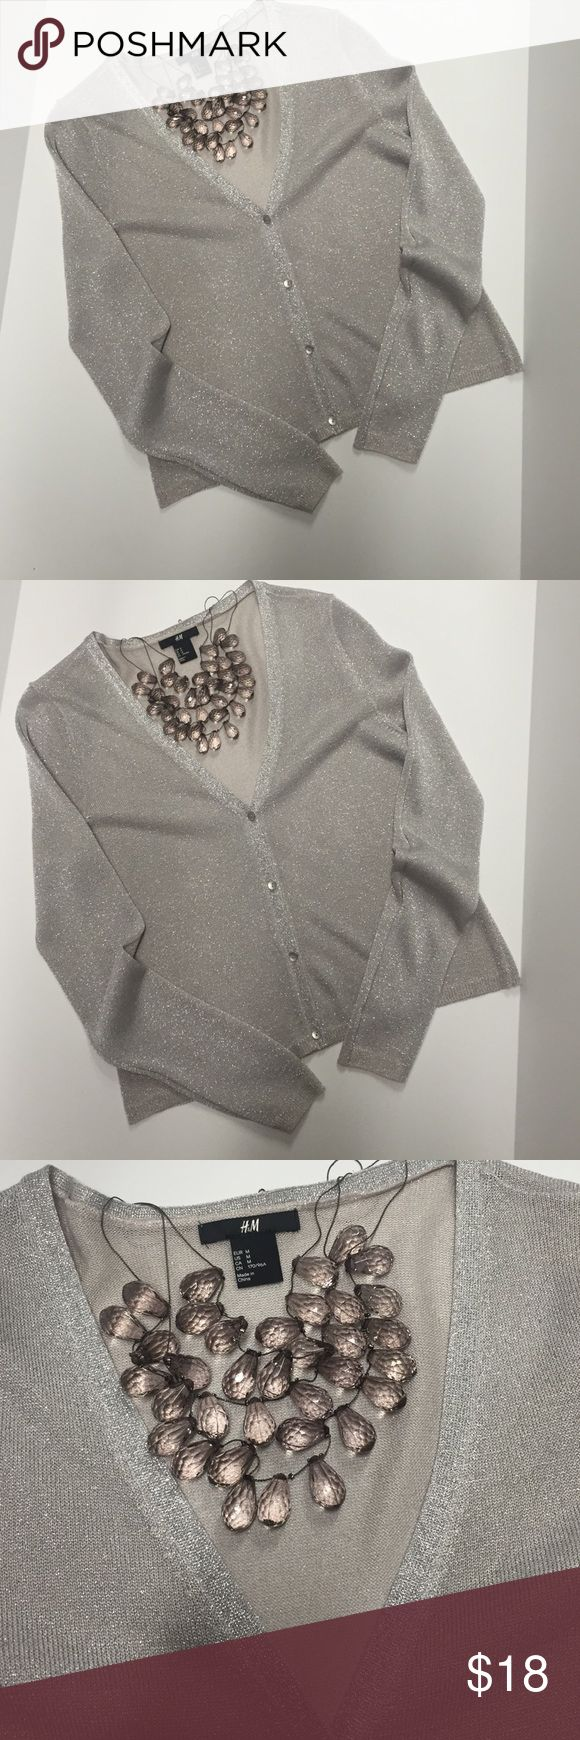 🎉 FEELING FESTIVUS 🎉H&M Silver Metallic Cardigan 🎉 FEELING FESTIVUS 🎉 H&M Silver Metallic Cardigan 🎉 Classy/Dressy/Pretty Pretty ✨ for the on the town look or casually staying in but want that sassy pretty fine ✨ 61% viscose 25% polyester 14% metallic sized fibre ✨ H&M Sweaters Cardigans